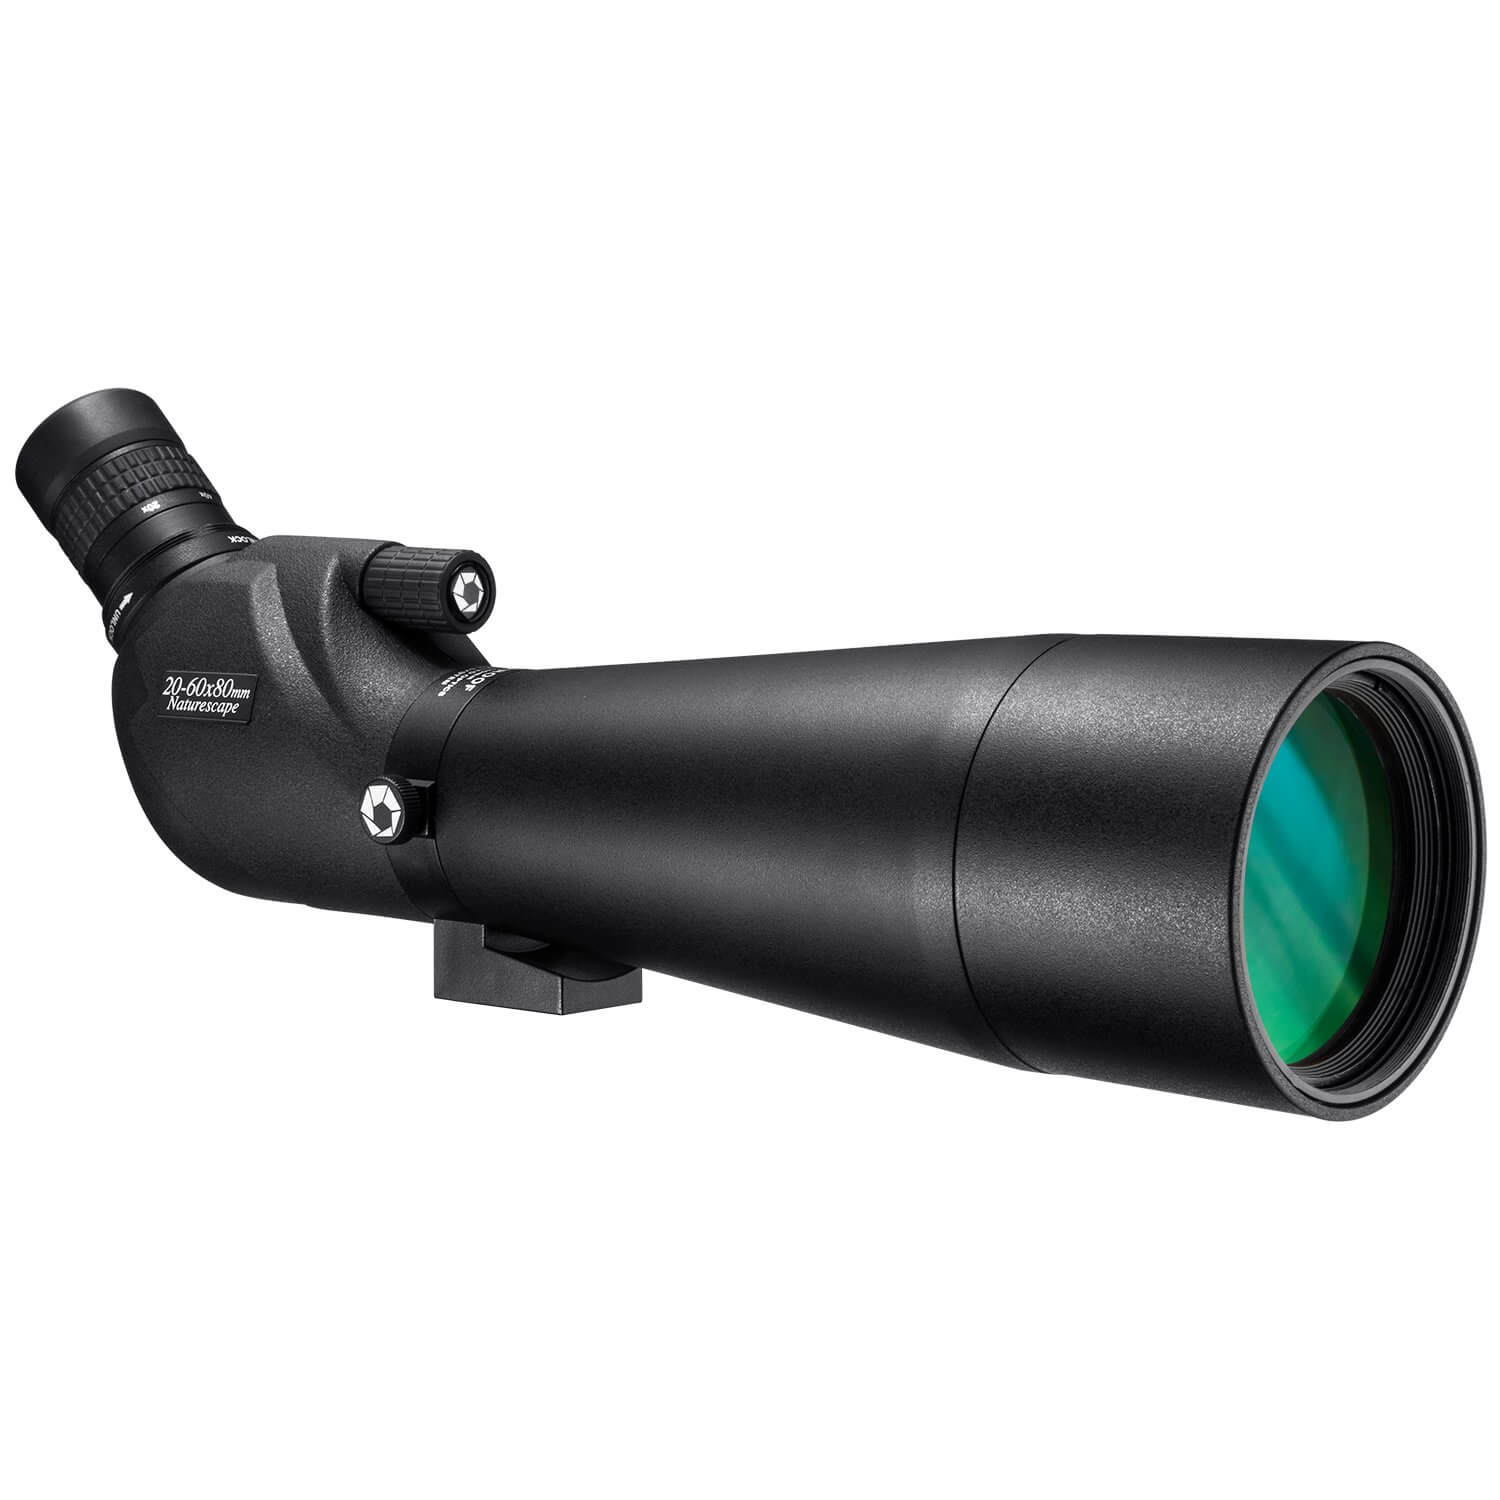 Barska 20-60x80mm WP Naturescape Spotting Scope